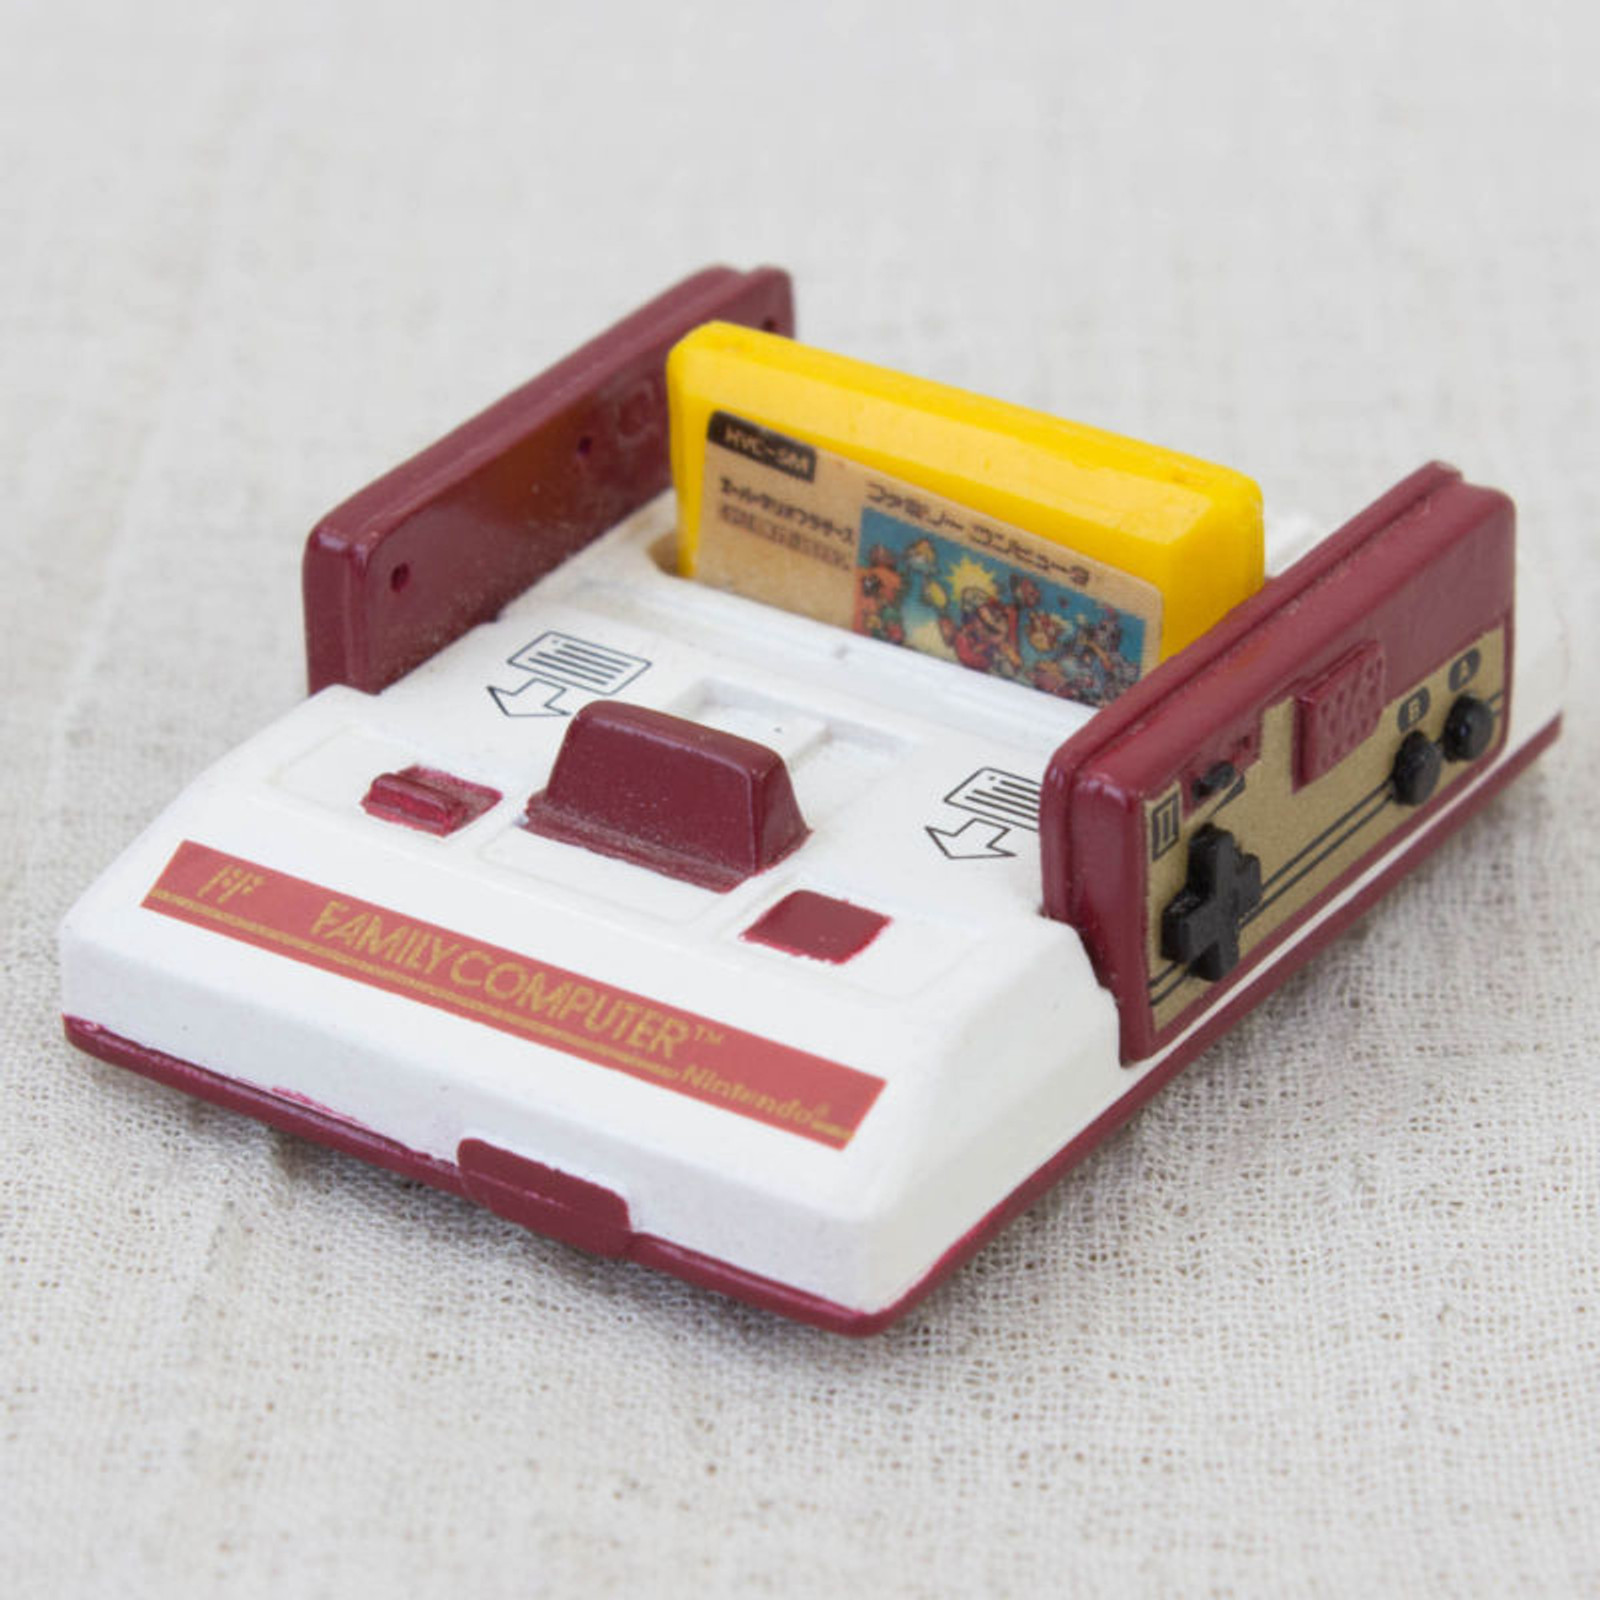 Nintendo Game Machine Miniature Figure Family Computer Famicom HVC-001 NES